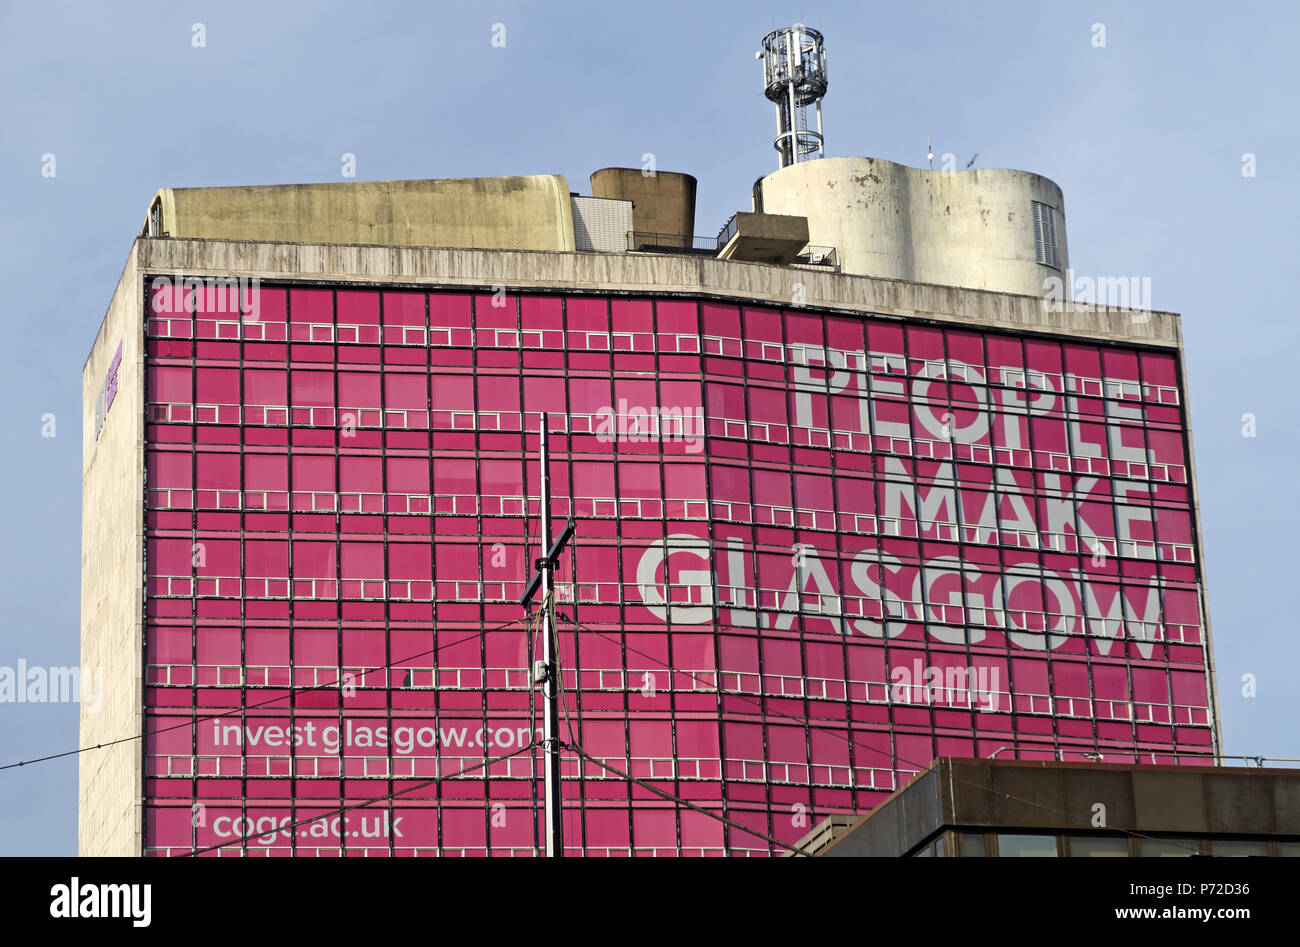 People Make Glasgow in pink, Glasgow City Brand, Strathclyde University, Met Tower, city centre, Scotland, UK Stock Photo